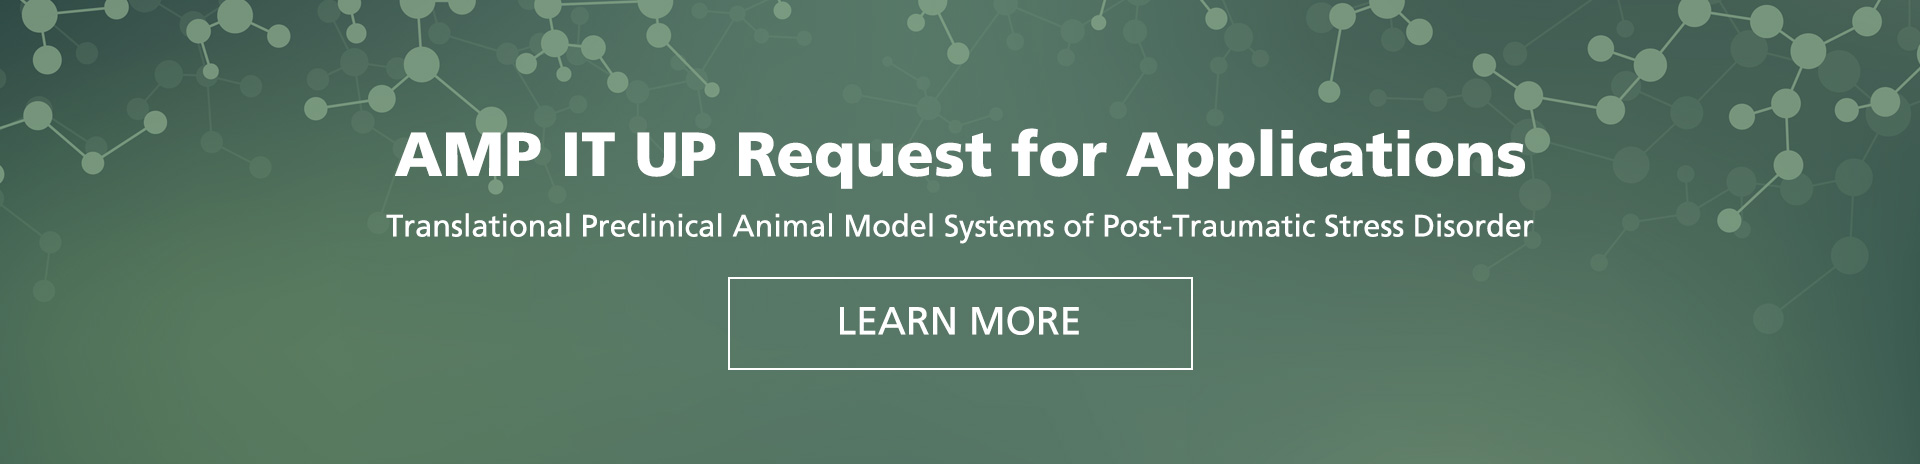 AMP IT UP Request for Applications